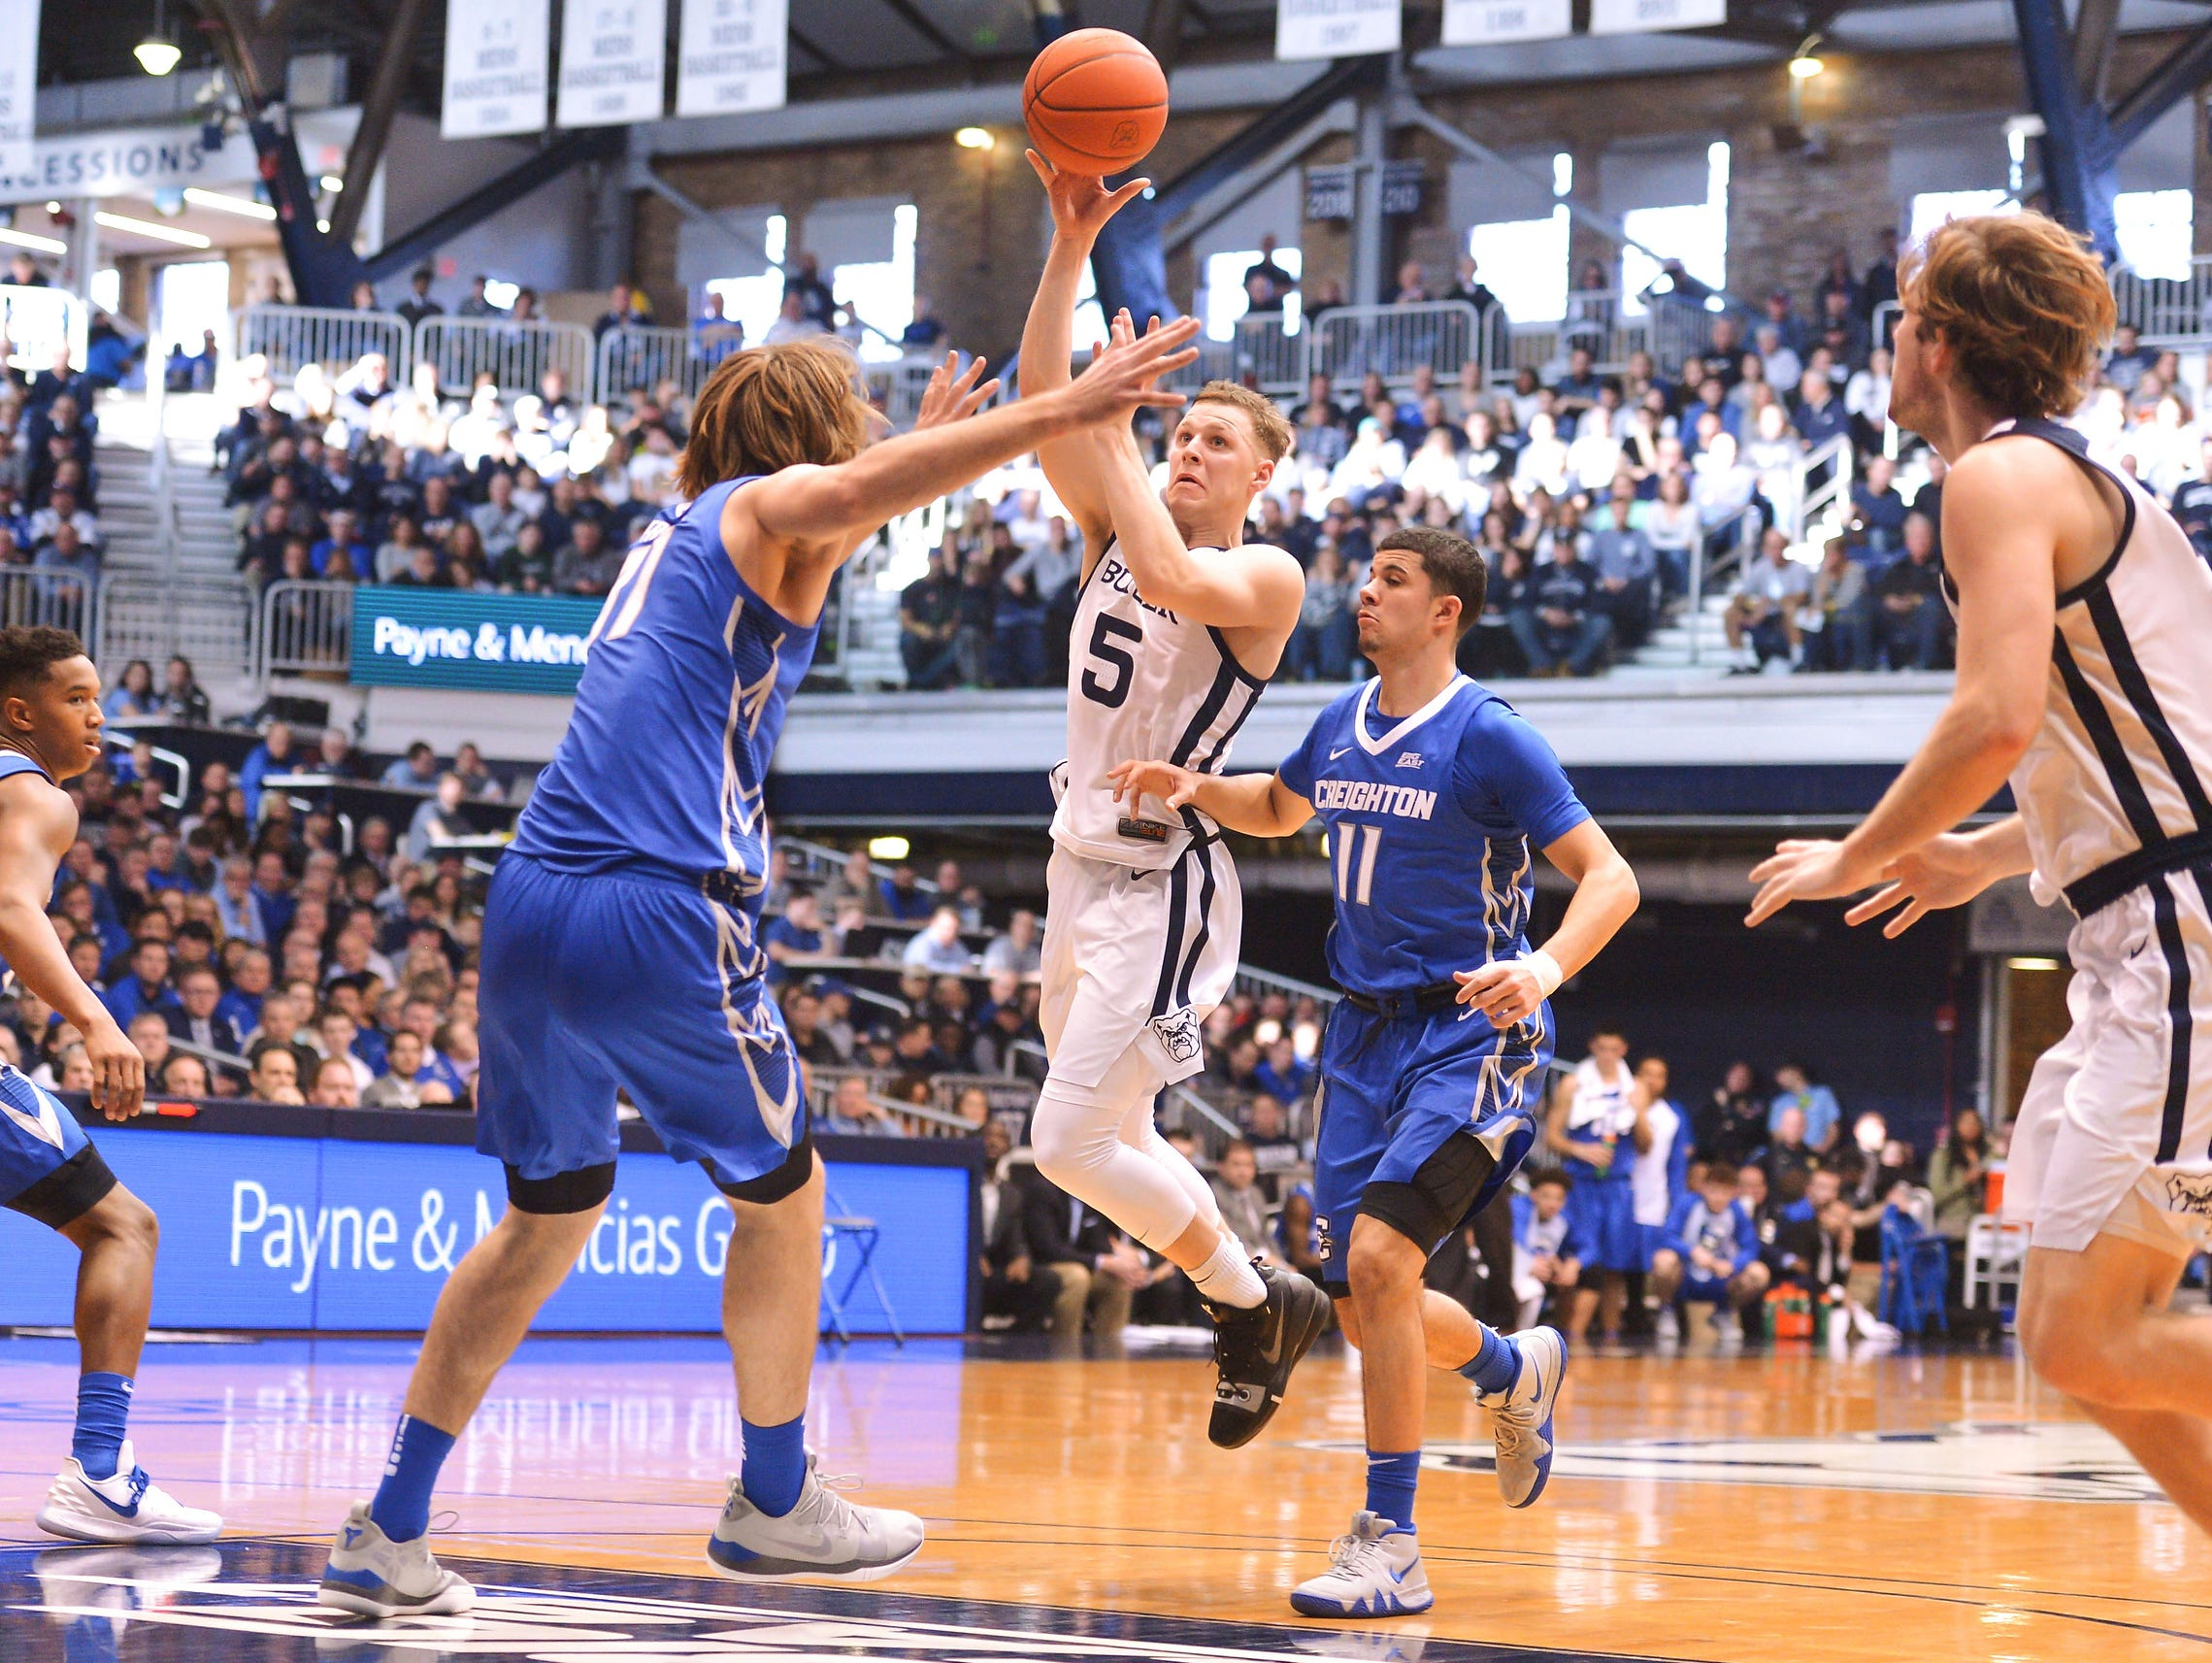 Butler Bulldogs guard Paul Jorgensen (5) scores over the Creighton Bluejays during the second half of game action between Butler University and Creighton University, at Hinkle Fieldhouse in Indianapolis, Indiana on Saturday, Jan. 5, 2019. The Butler Bulldogs defeated the Creighton Bluejays 84-69.